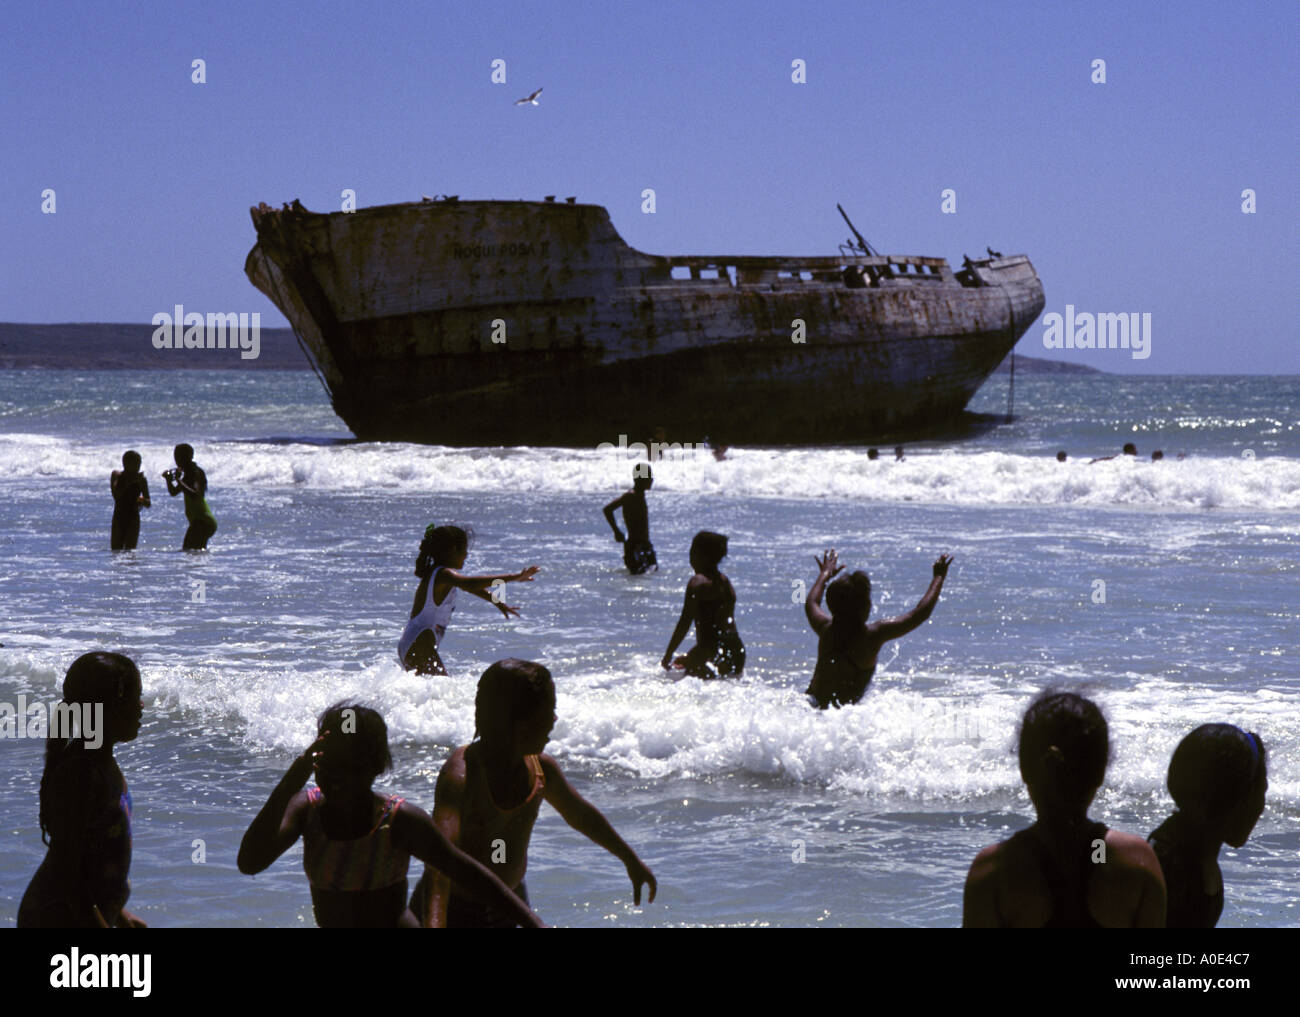 South African exotic location shipwreck South Africa People children playing in the ocean near a beached ship South Africa - Stock Image